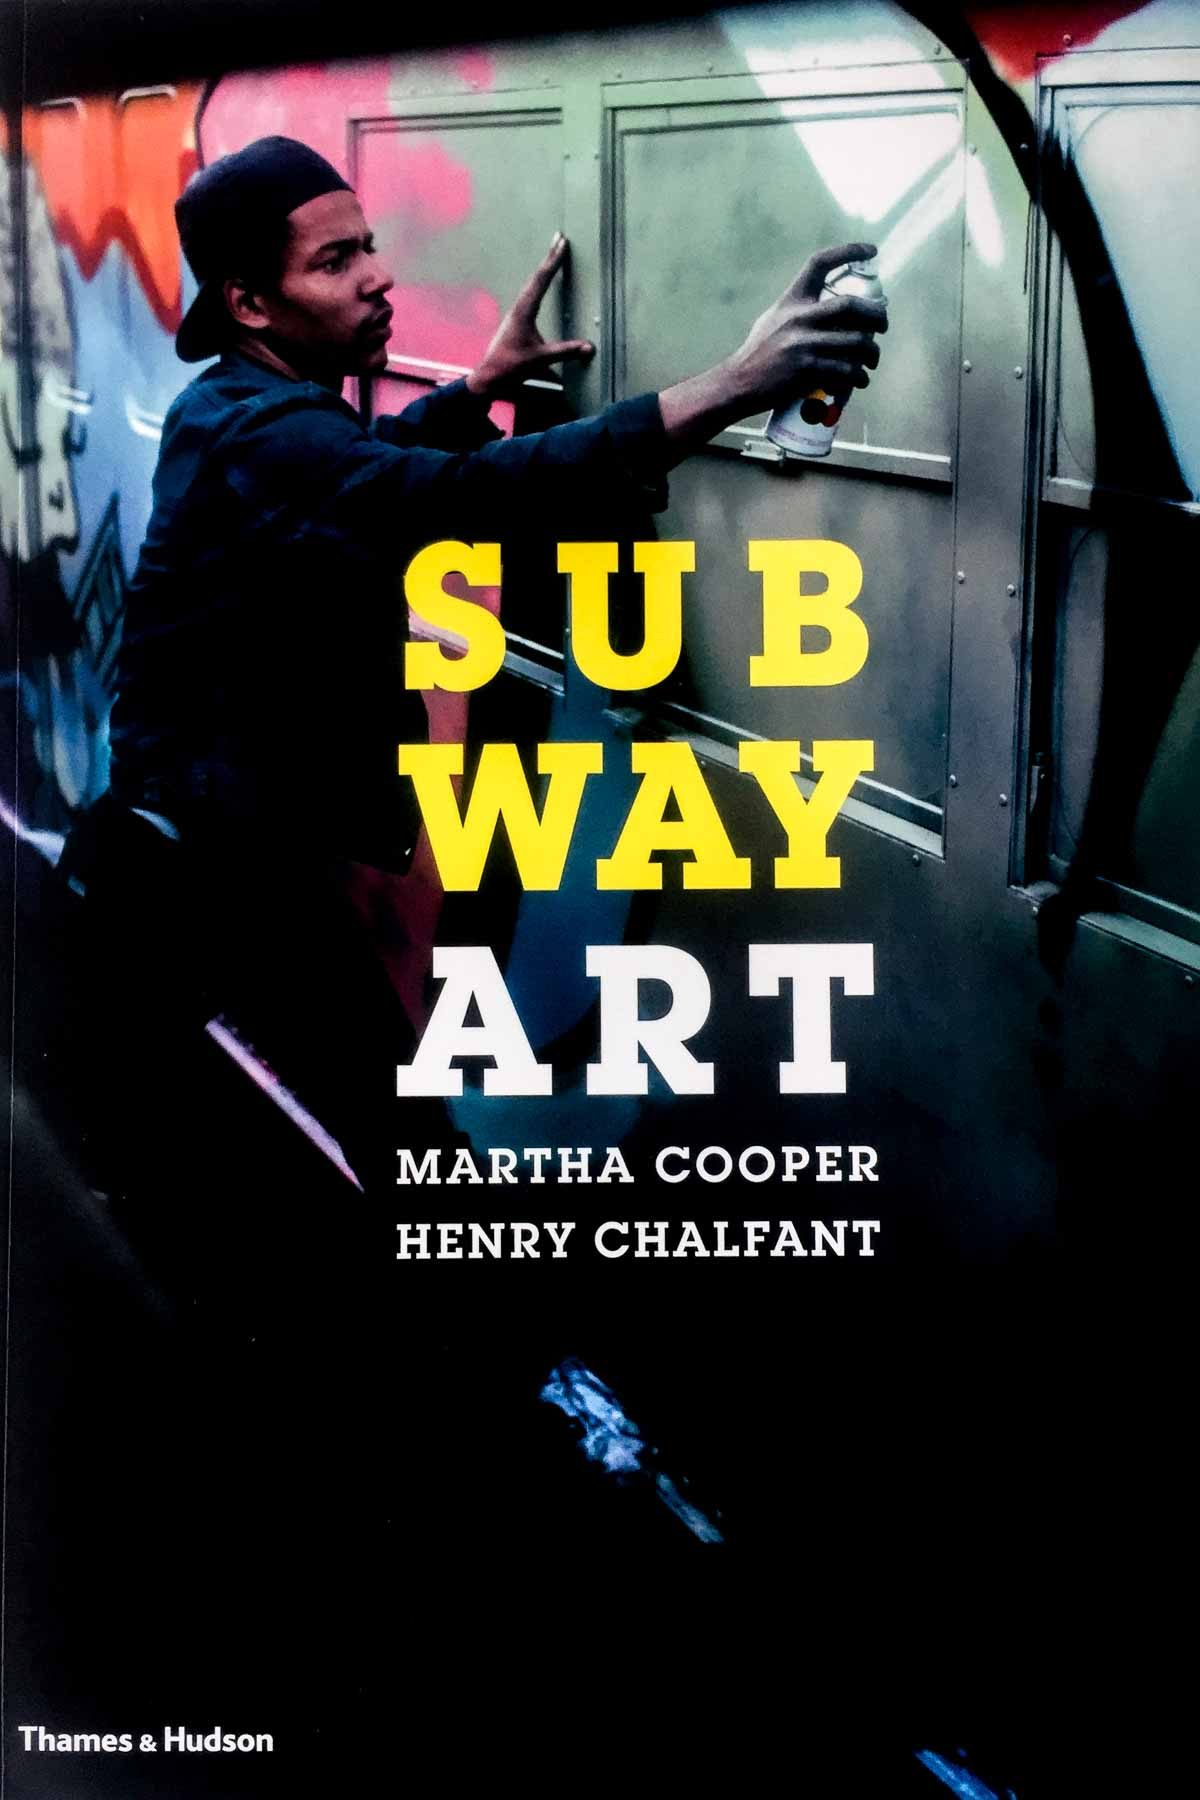 SUBWAY ART di Martha Cooper